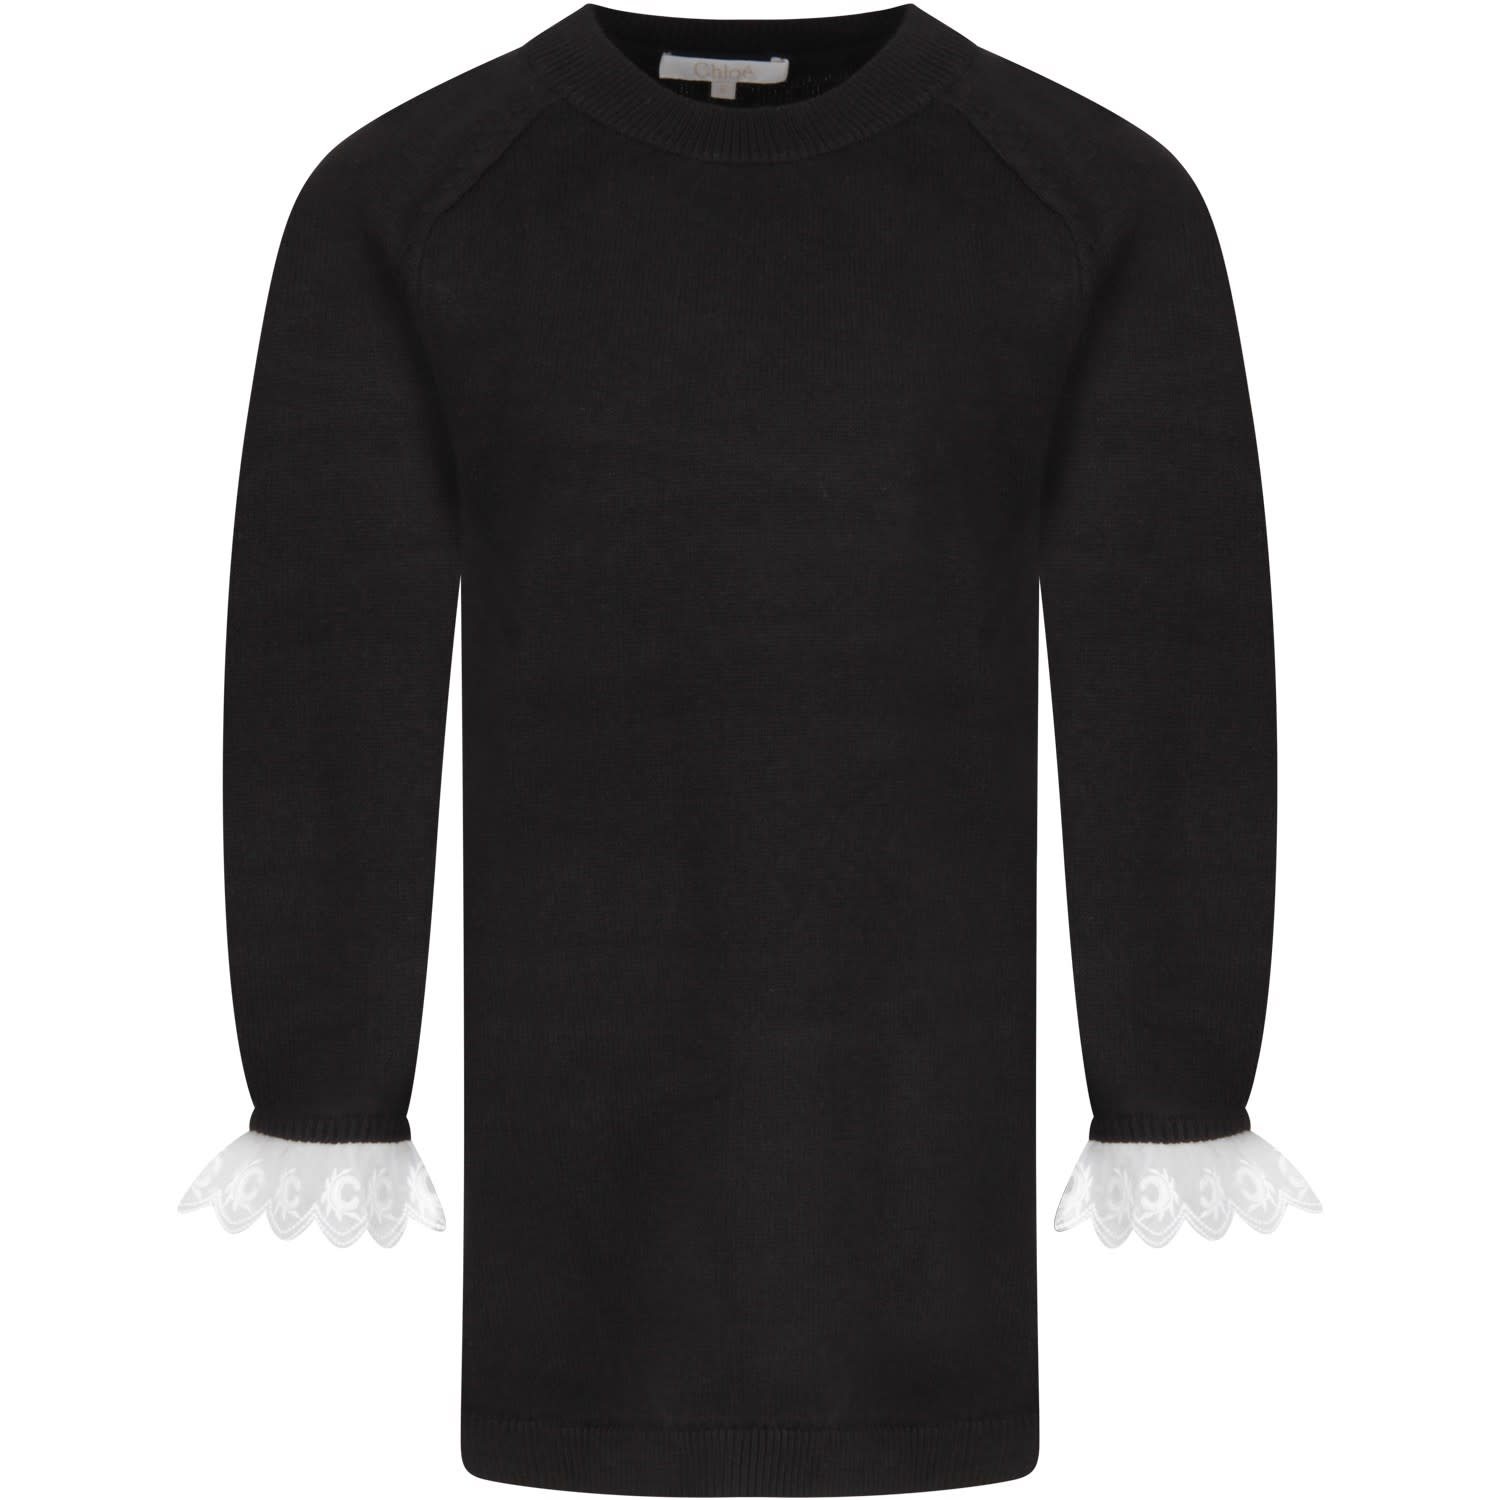 Color: Black Black dress, with long sleeves and ribbed crew-neck. It is embellished with white details with embroidered iconic C, on the cuffs. 90% Cotton 10% Wool. Machine wash at 30°C.